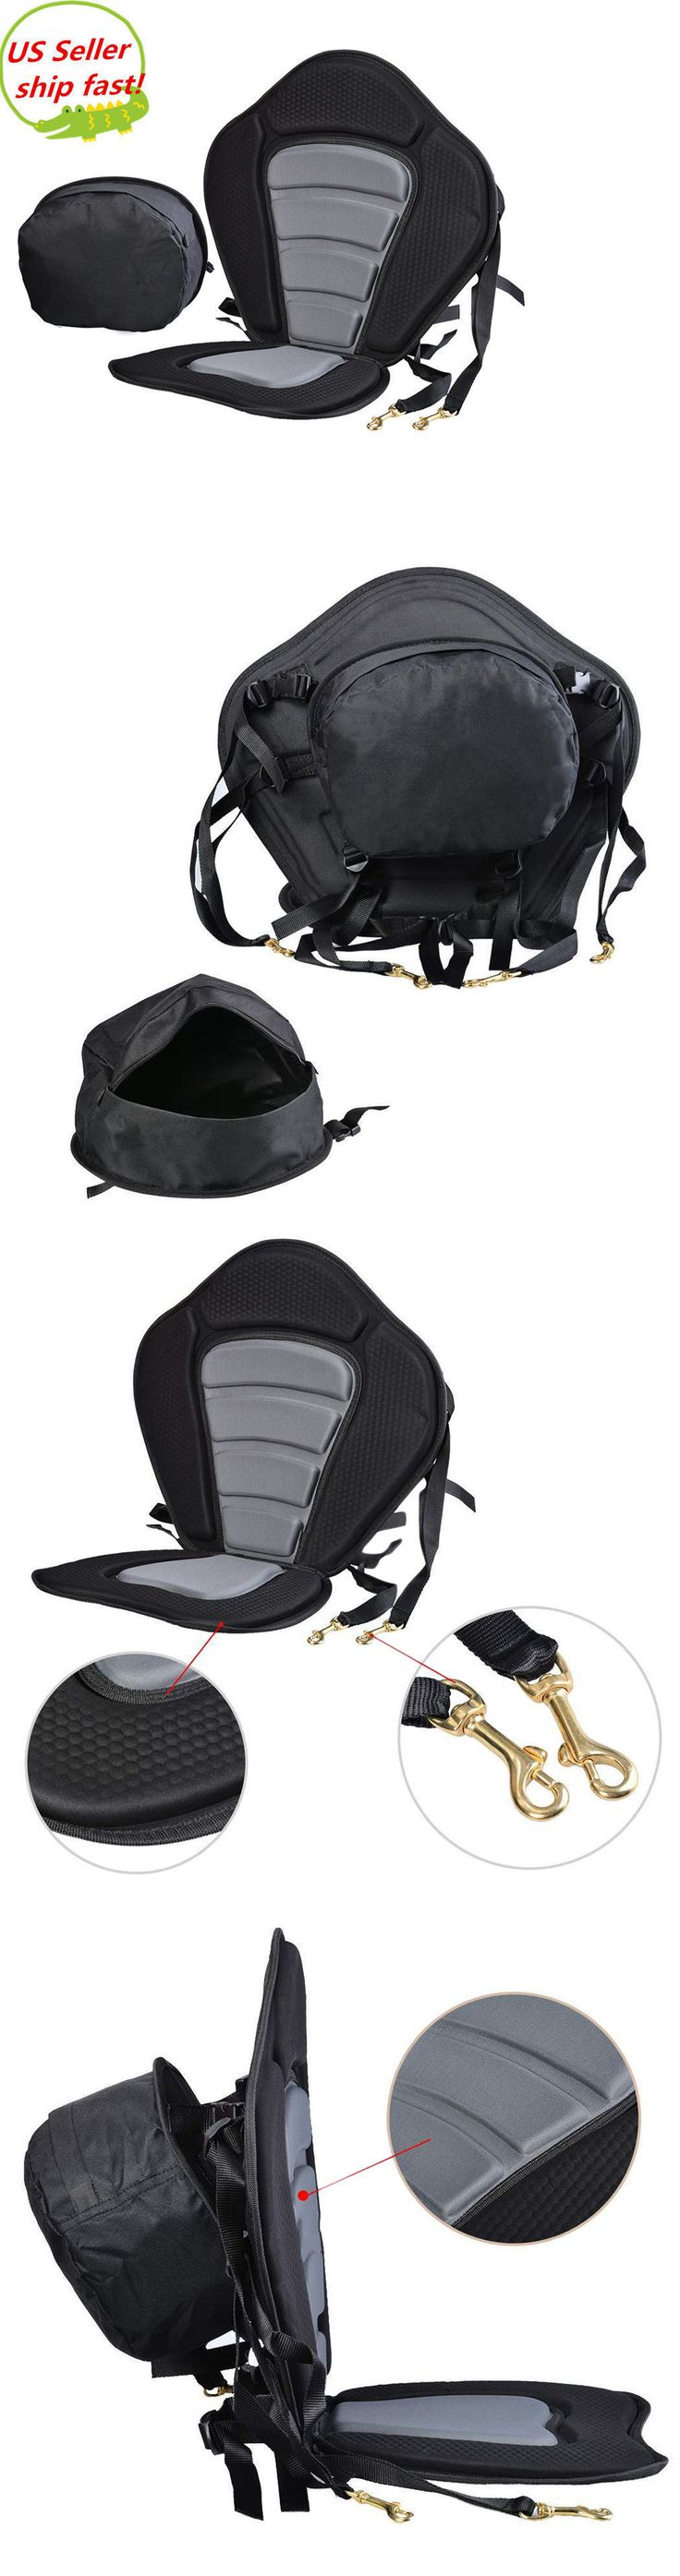 Accessories 87089: Adjustable Padded Deluxe Kayak Seat Detachable Back Backpack Bag Canoe Backrest -> BUY IT NOW ONLY: $30.32 on eBay!